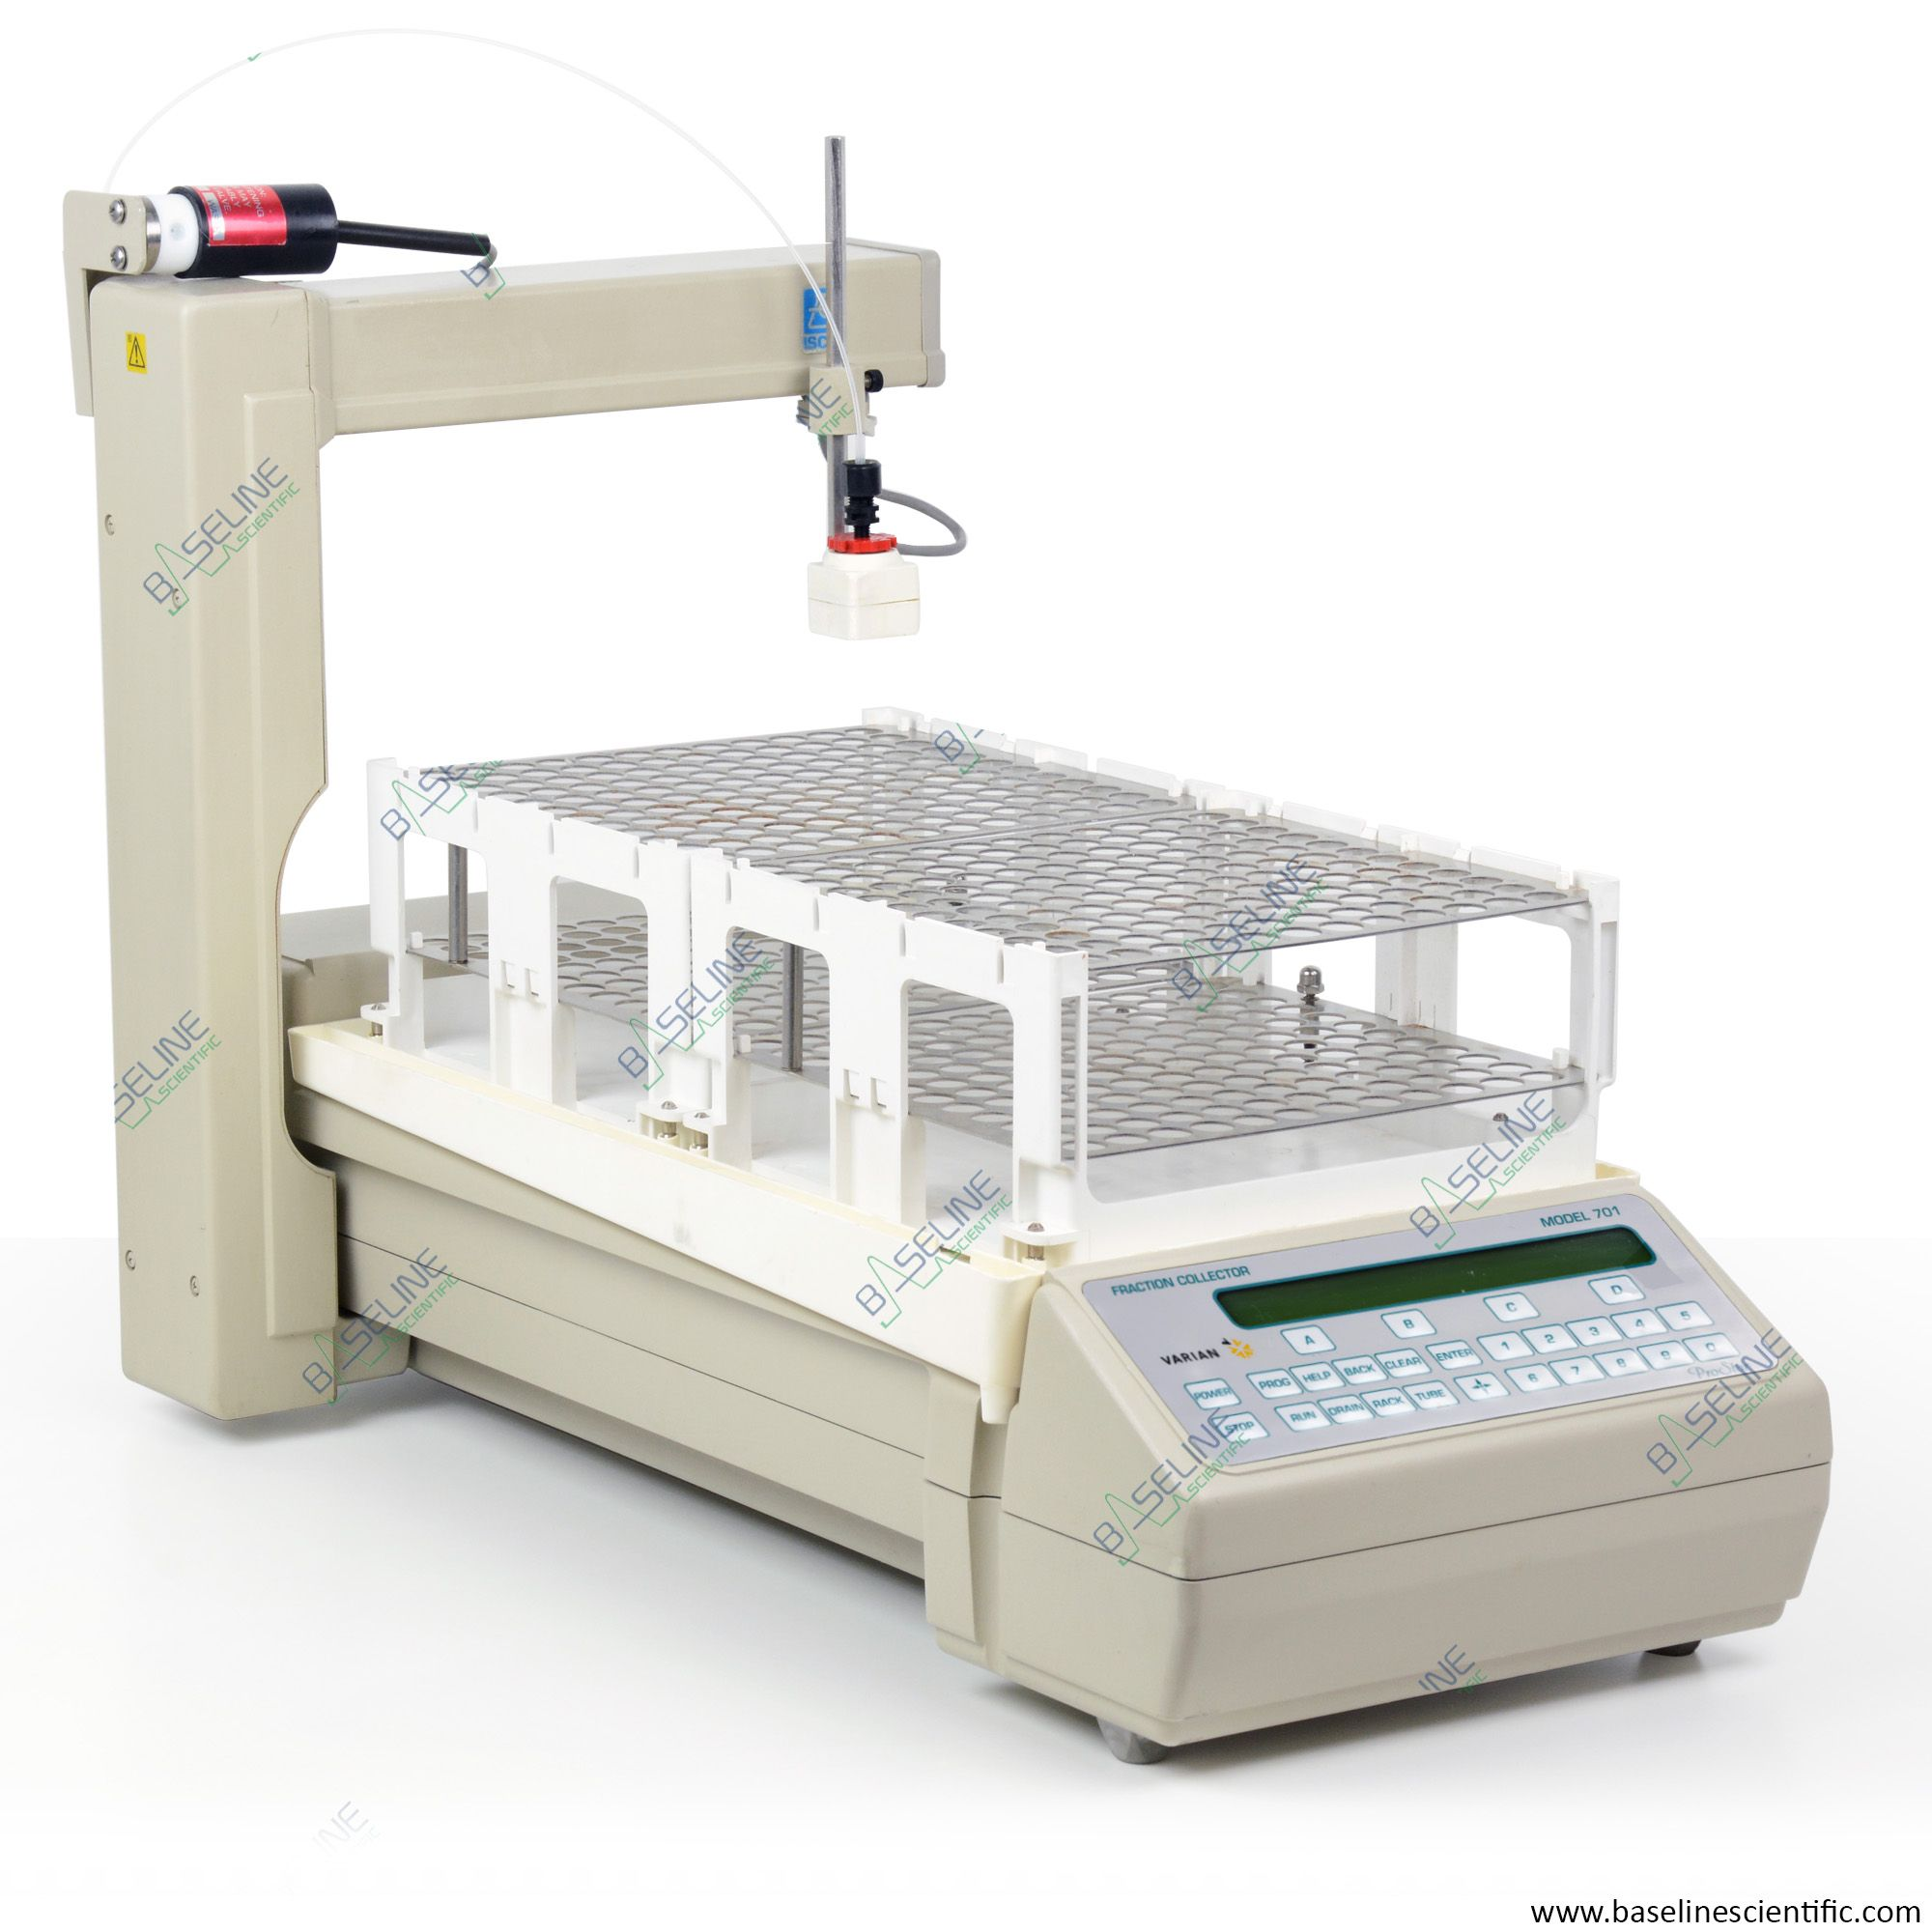 Reburbished Varian 701 X-Y Fraction Collector with ONE YEAR WARRANTY